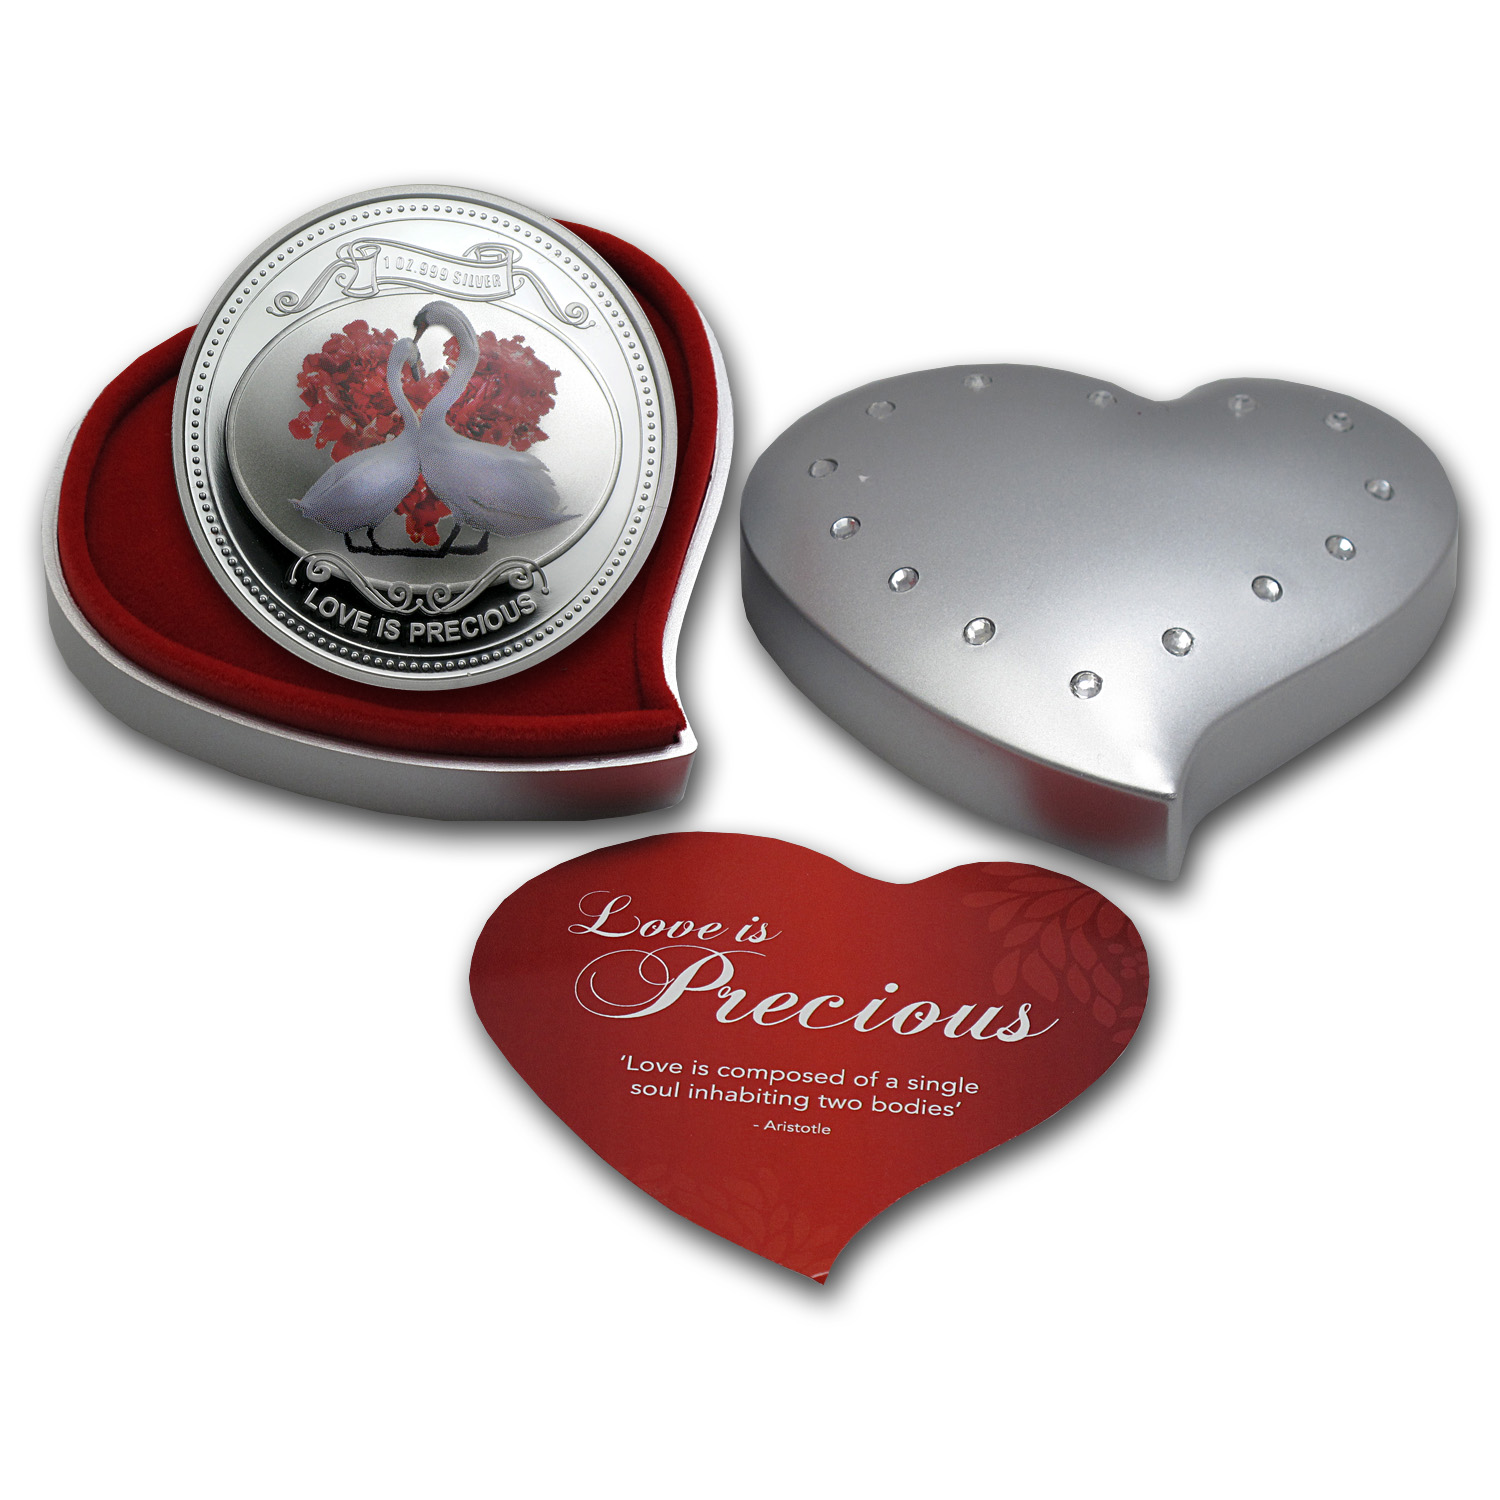 2014 1 oz Silver Niue $2 Love is Precious (W/Box & COA)